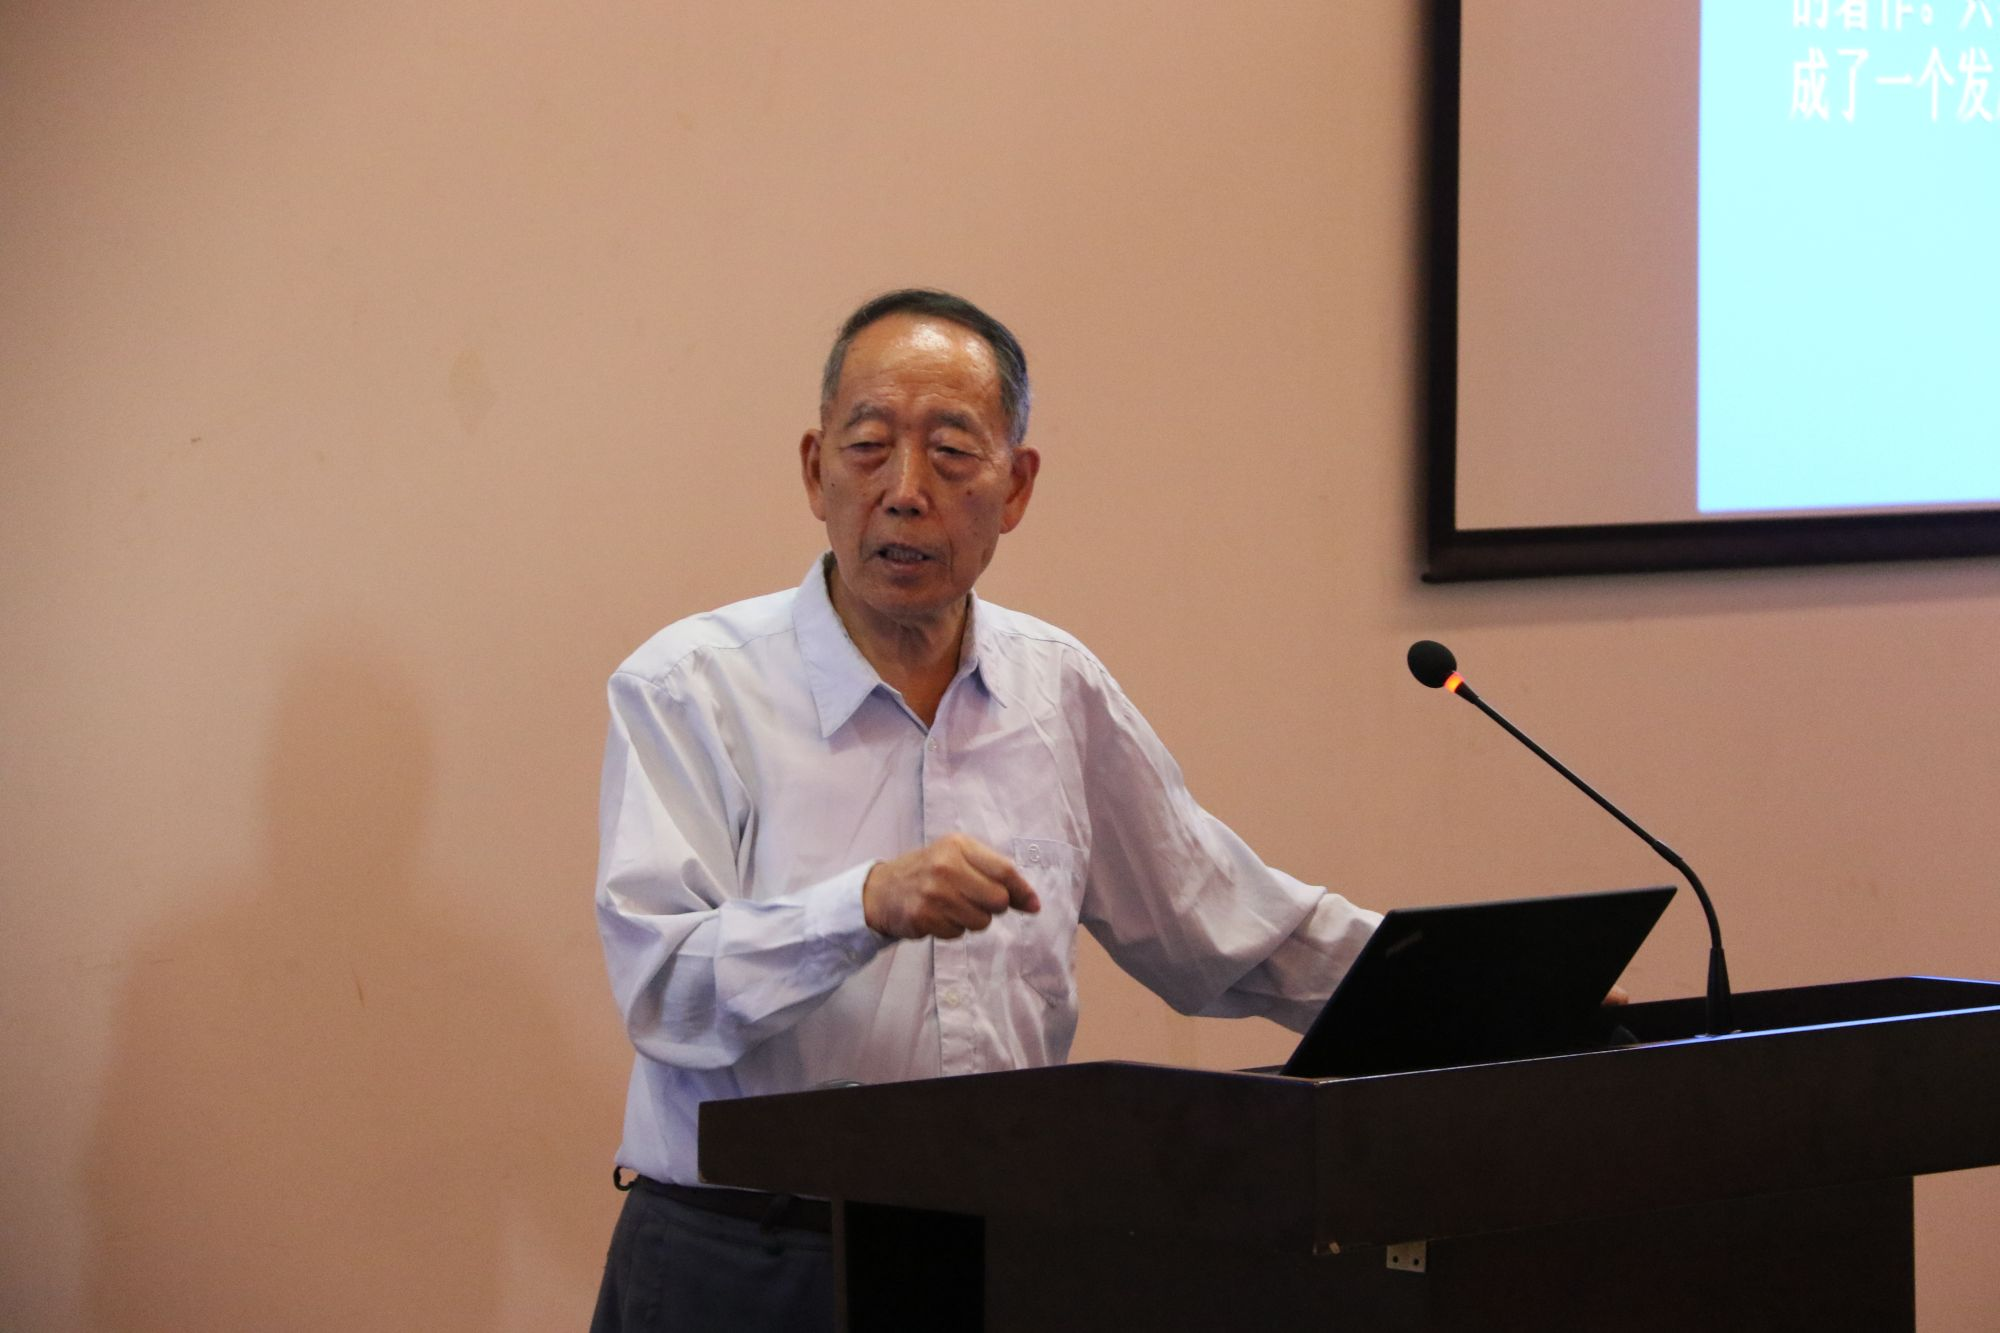 Academician Yan Jia'an gives talk on science and art at SUSTech